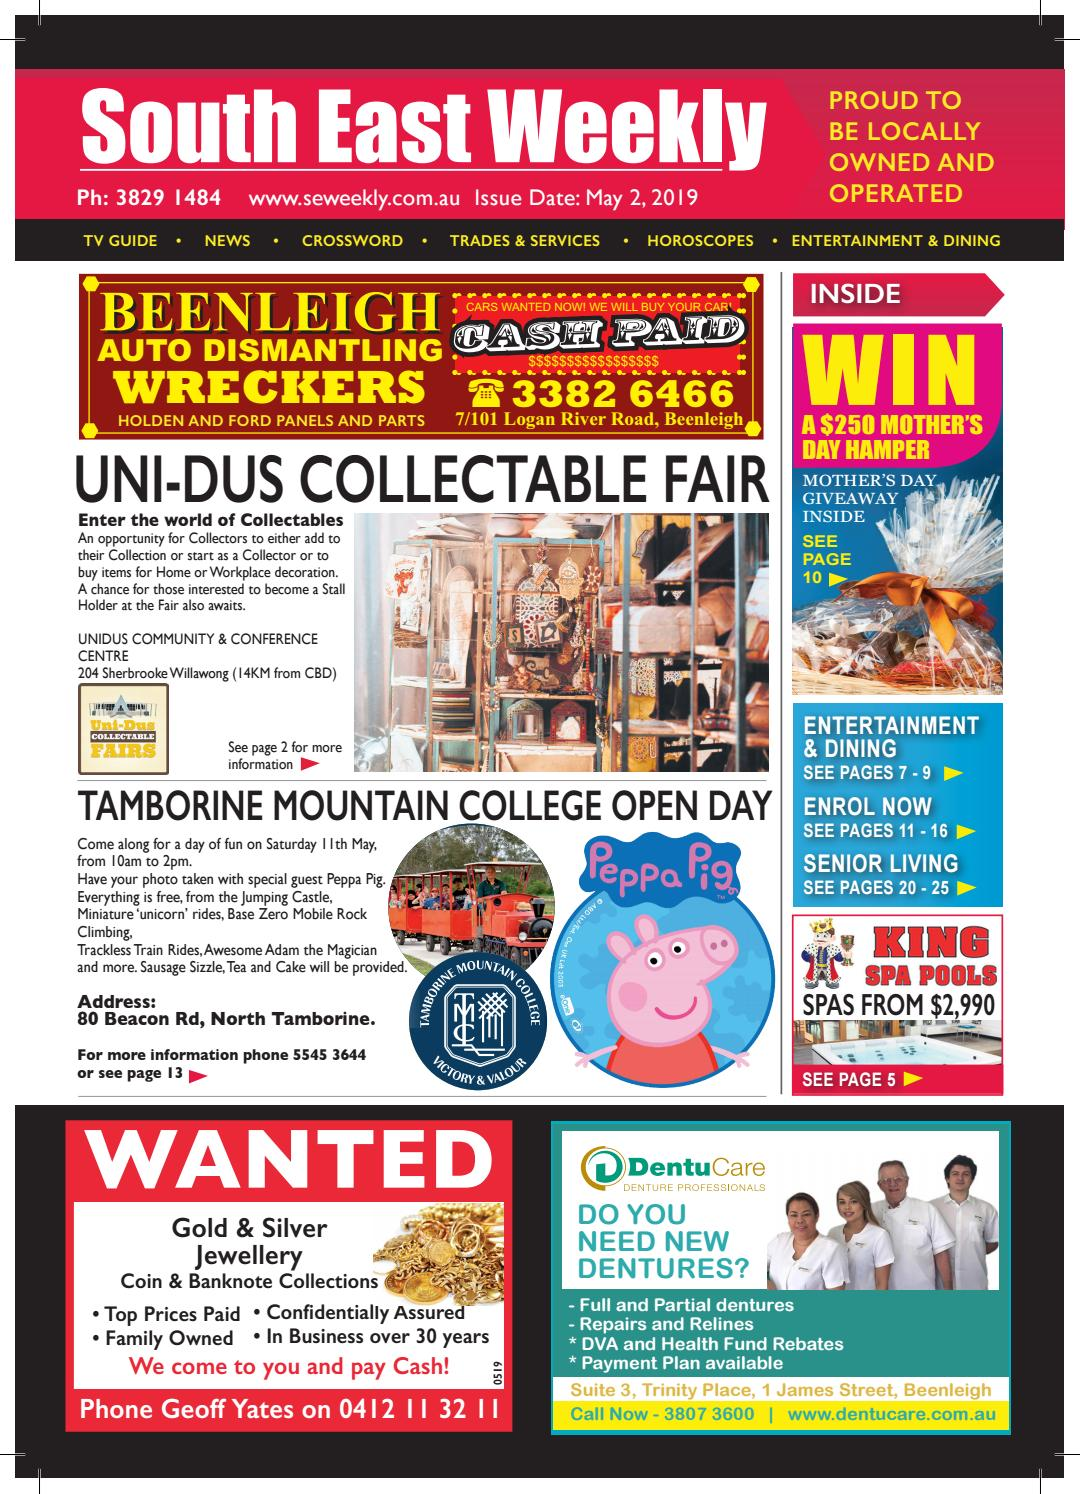 South East Weekly Magazine - May 2, 2019 by South East